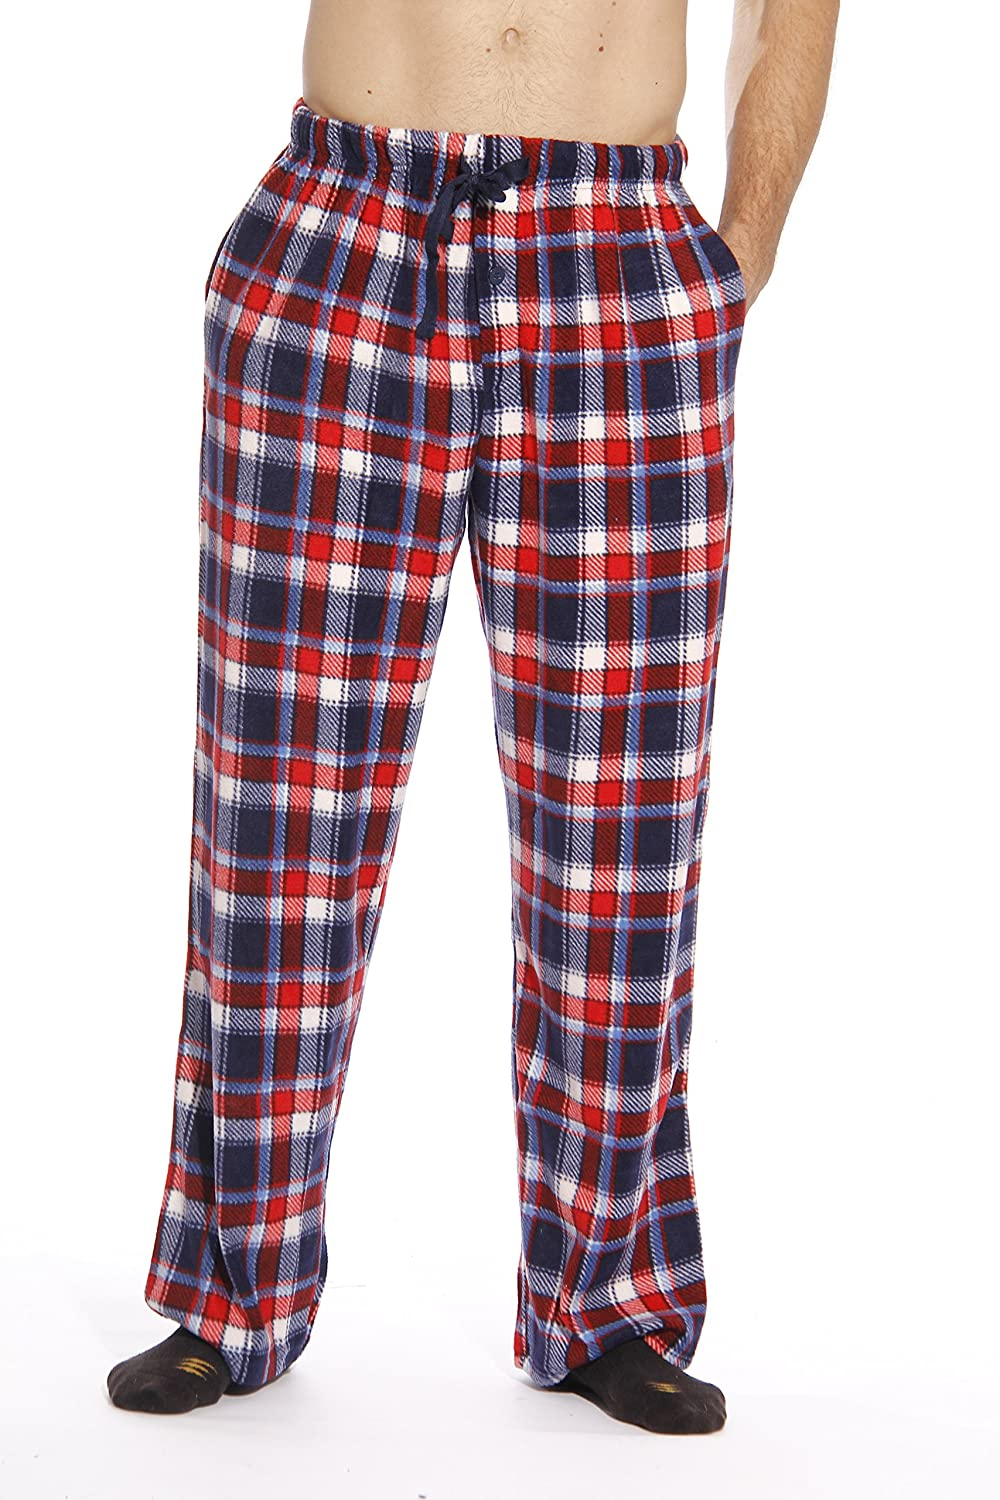 #followme Microfleece Men's Plaid Pajama Pants With Pockets